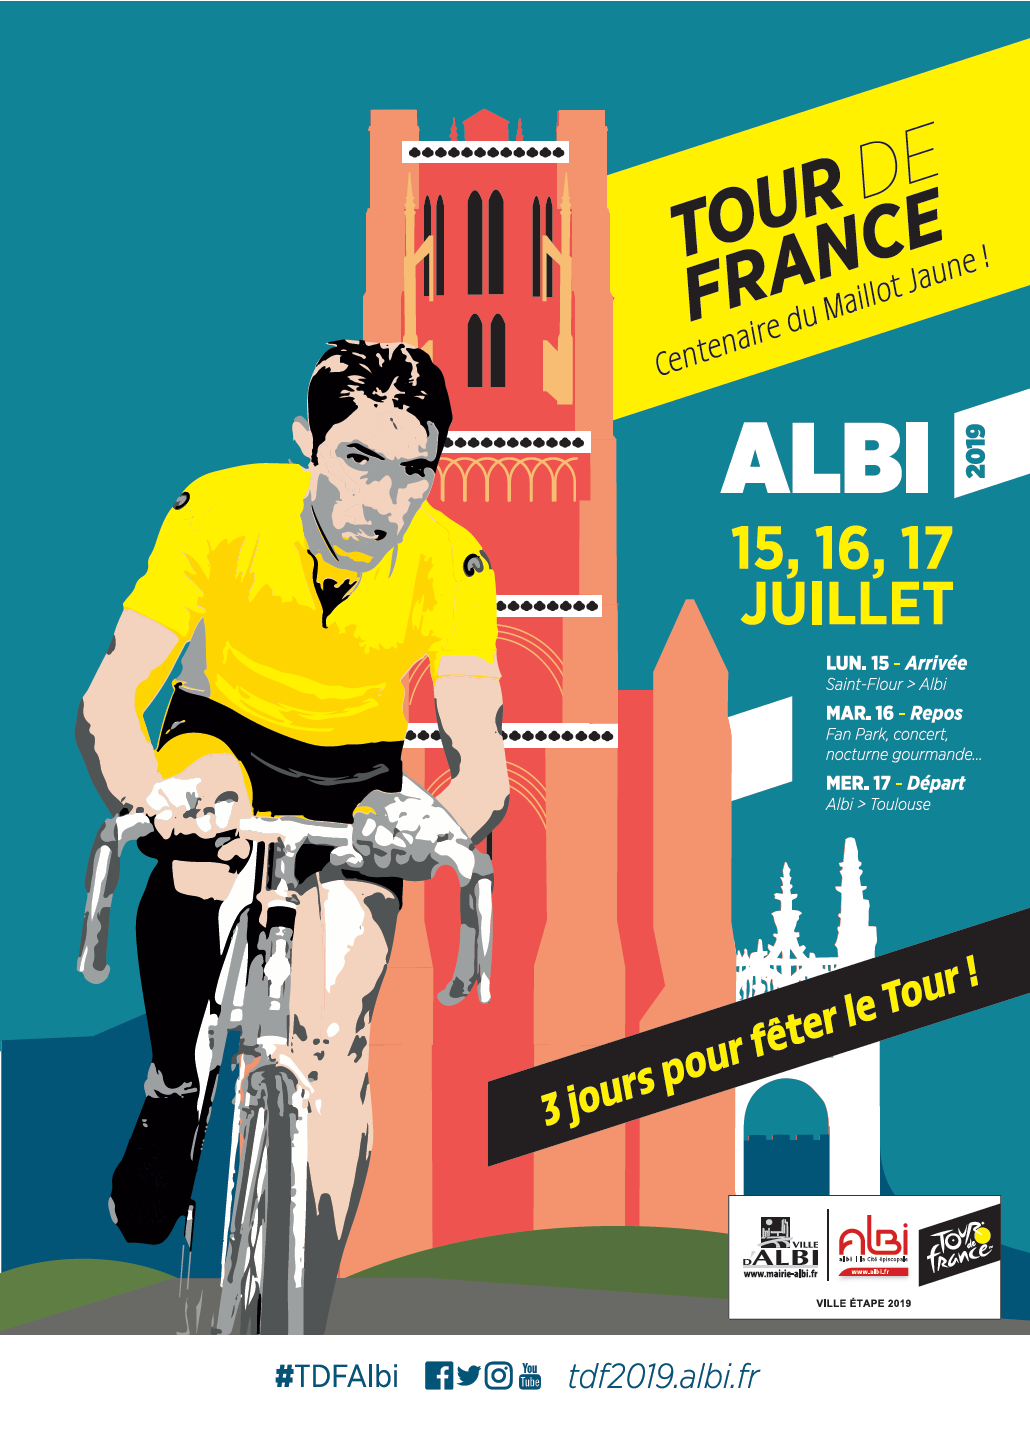 Le Tour de France 2019 à Albi / © DR